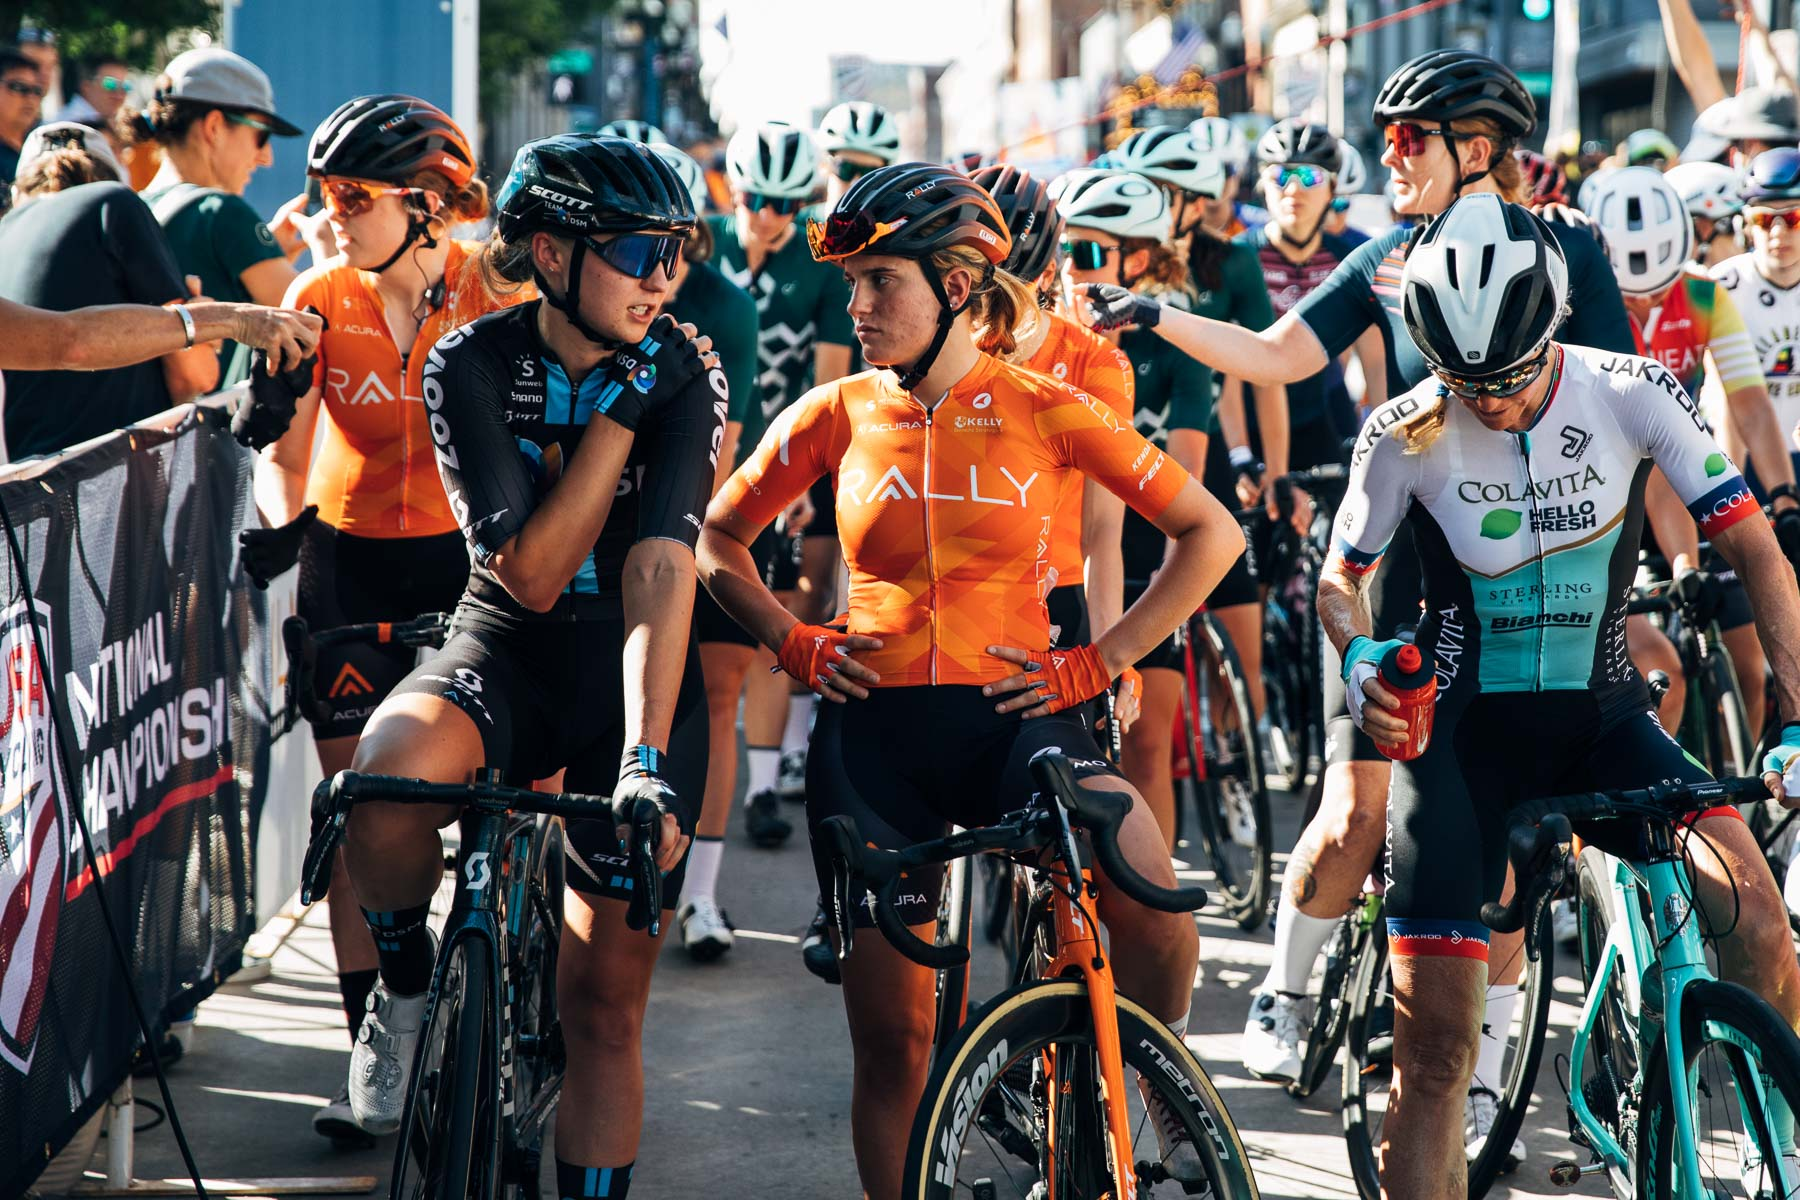 Giro d'Italia Donne: Katie Clouse shocked and excited about grand tour debut